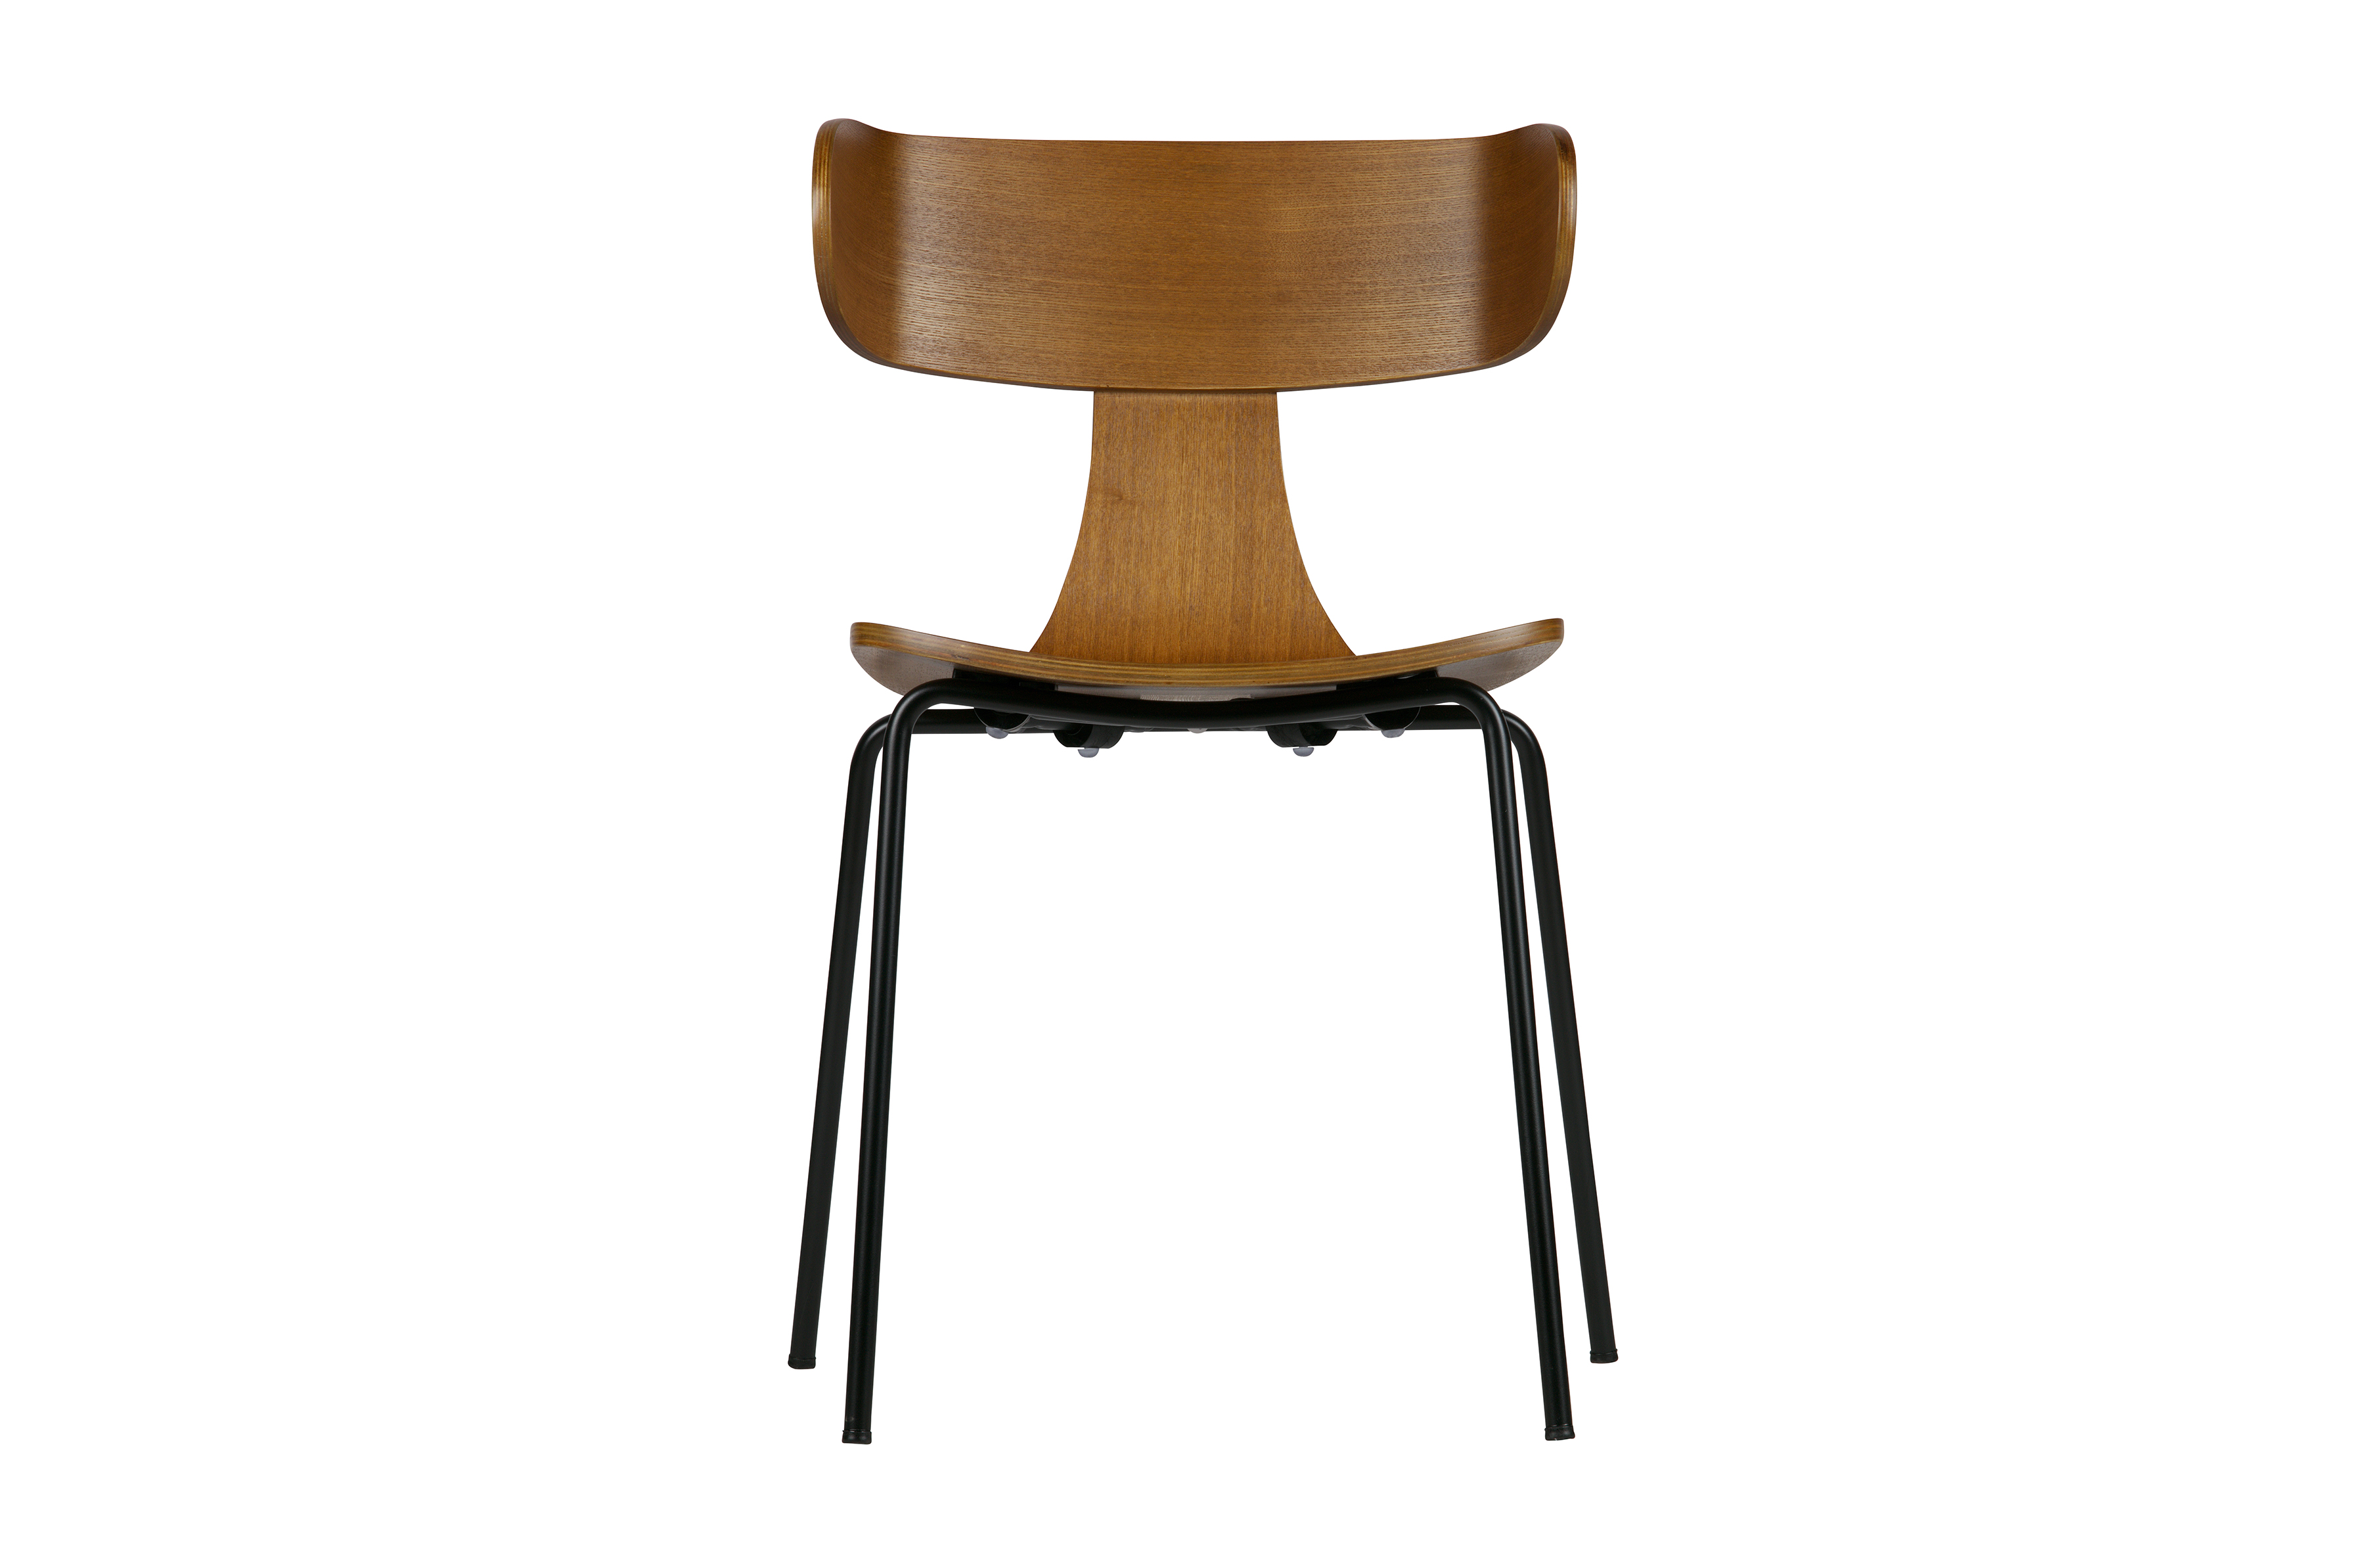 Be Pure Stoel : Form wooden chair with metal legs brown chairs living bepurehome